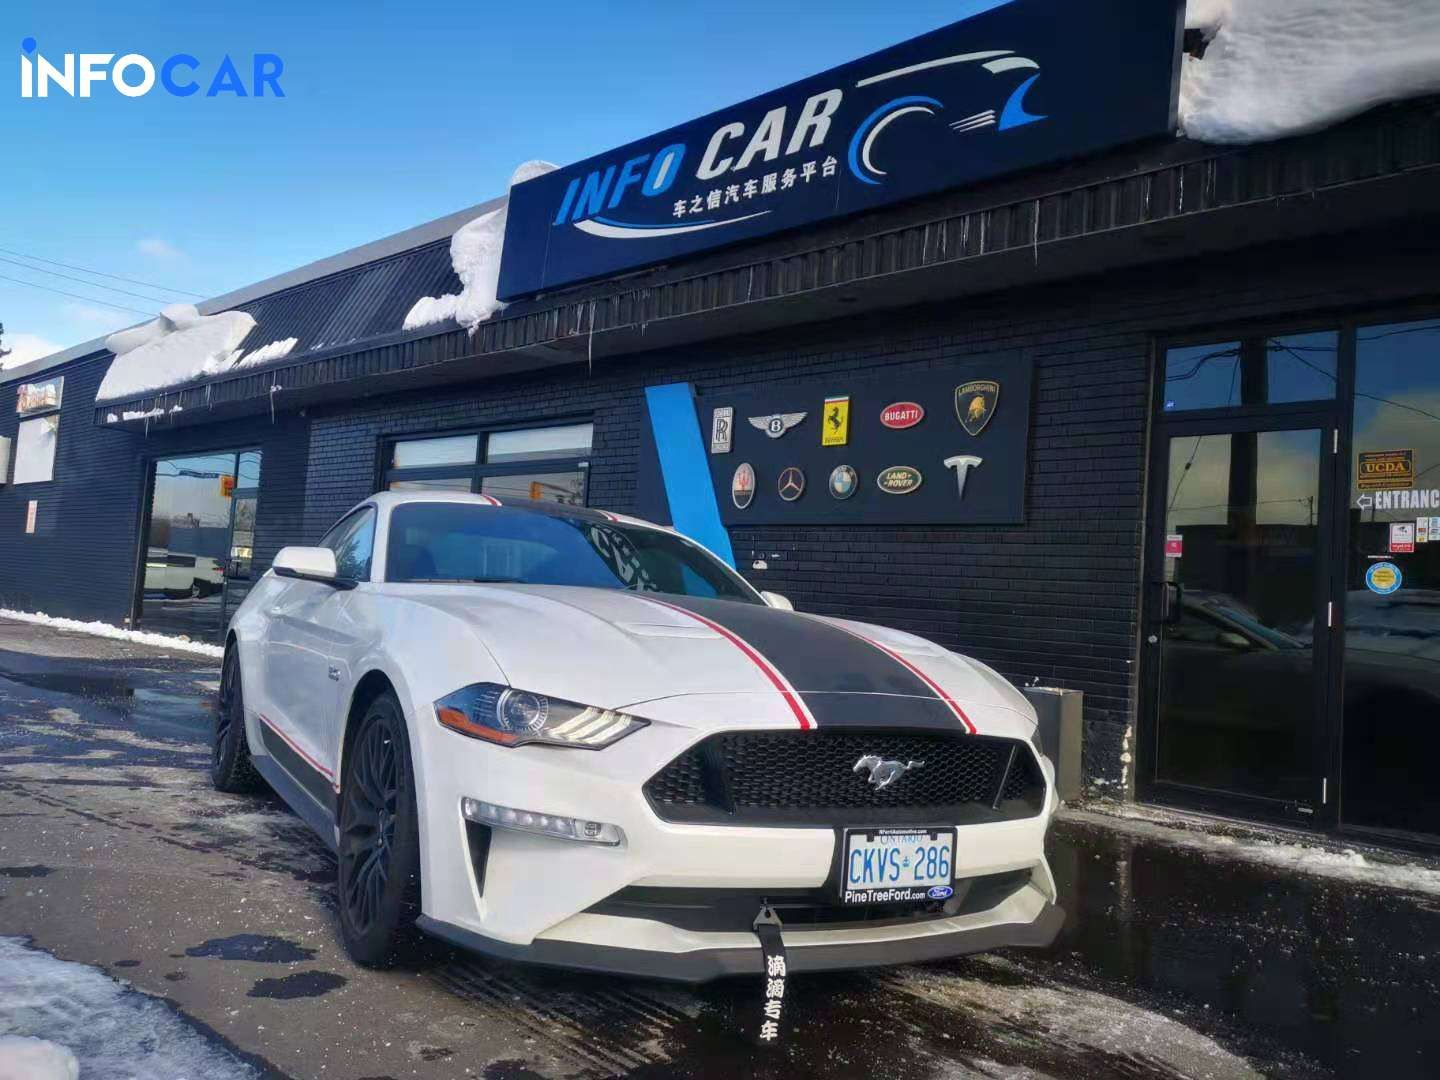 2019 Ford Mustang GT premium - INFOCAR - Toronto's Most Comprehensive New and Used Auto Trading Platform